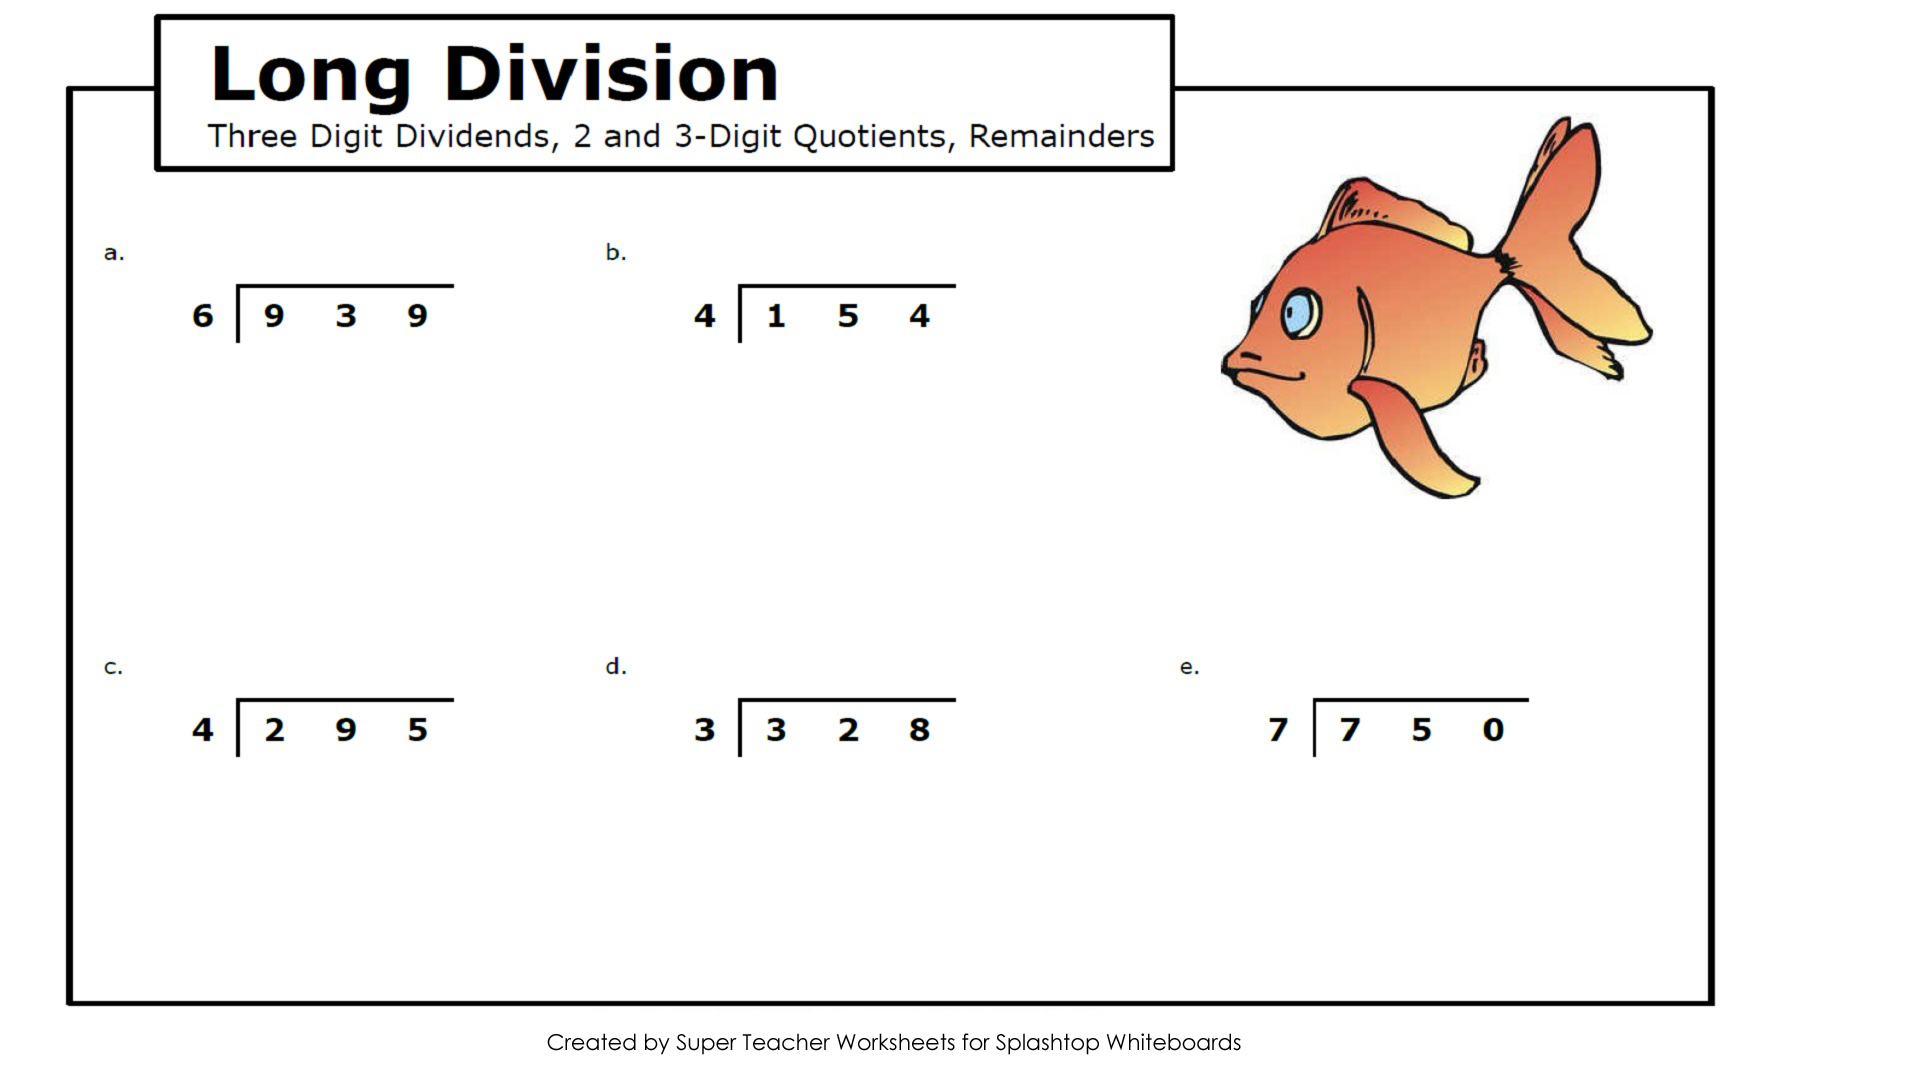 hight resolution of Copy Of Math: Long Division - Lessons - Blendspace